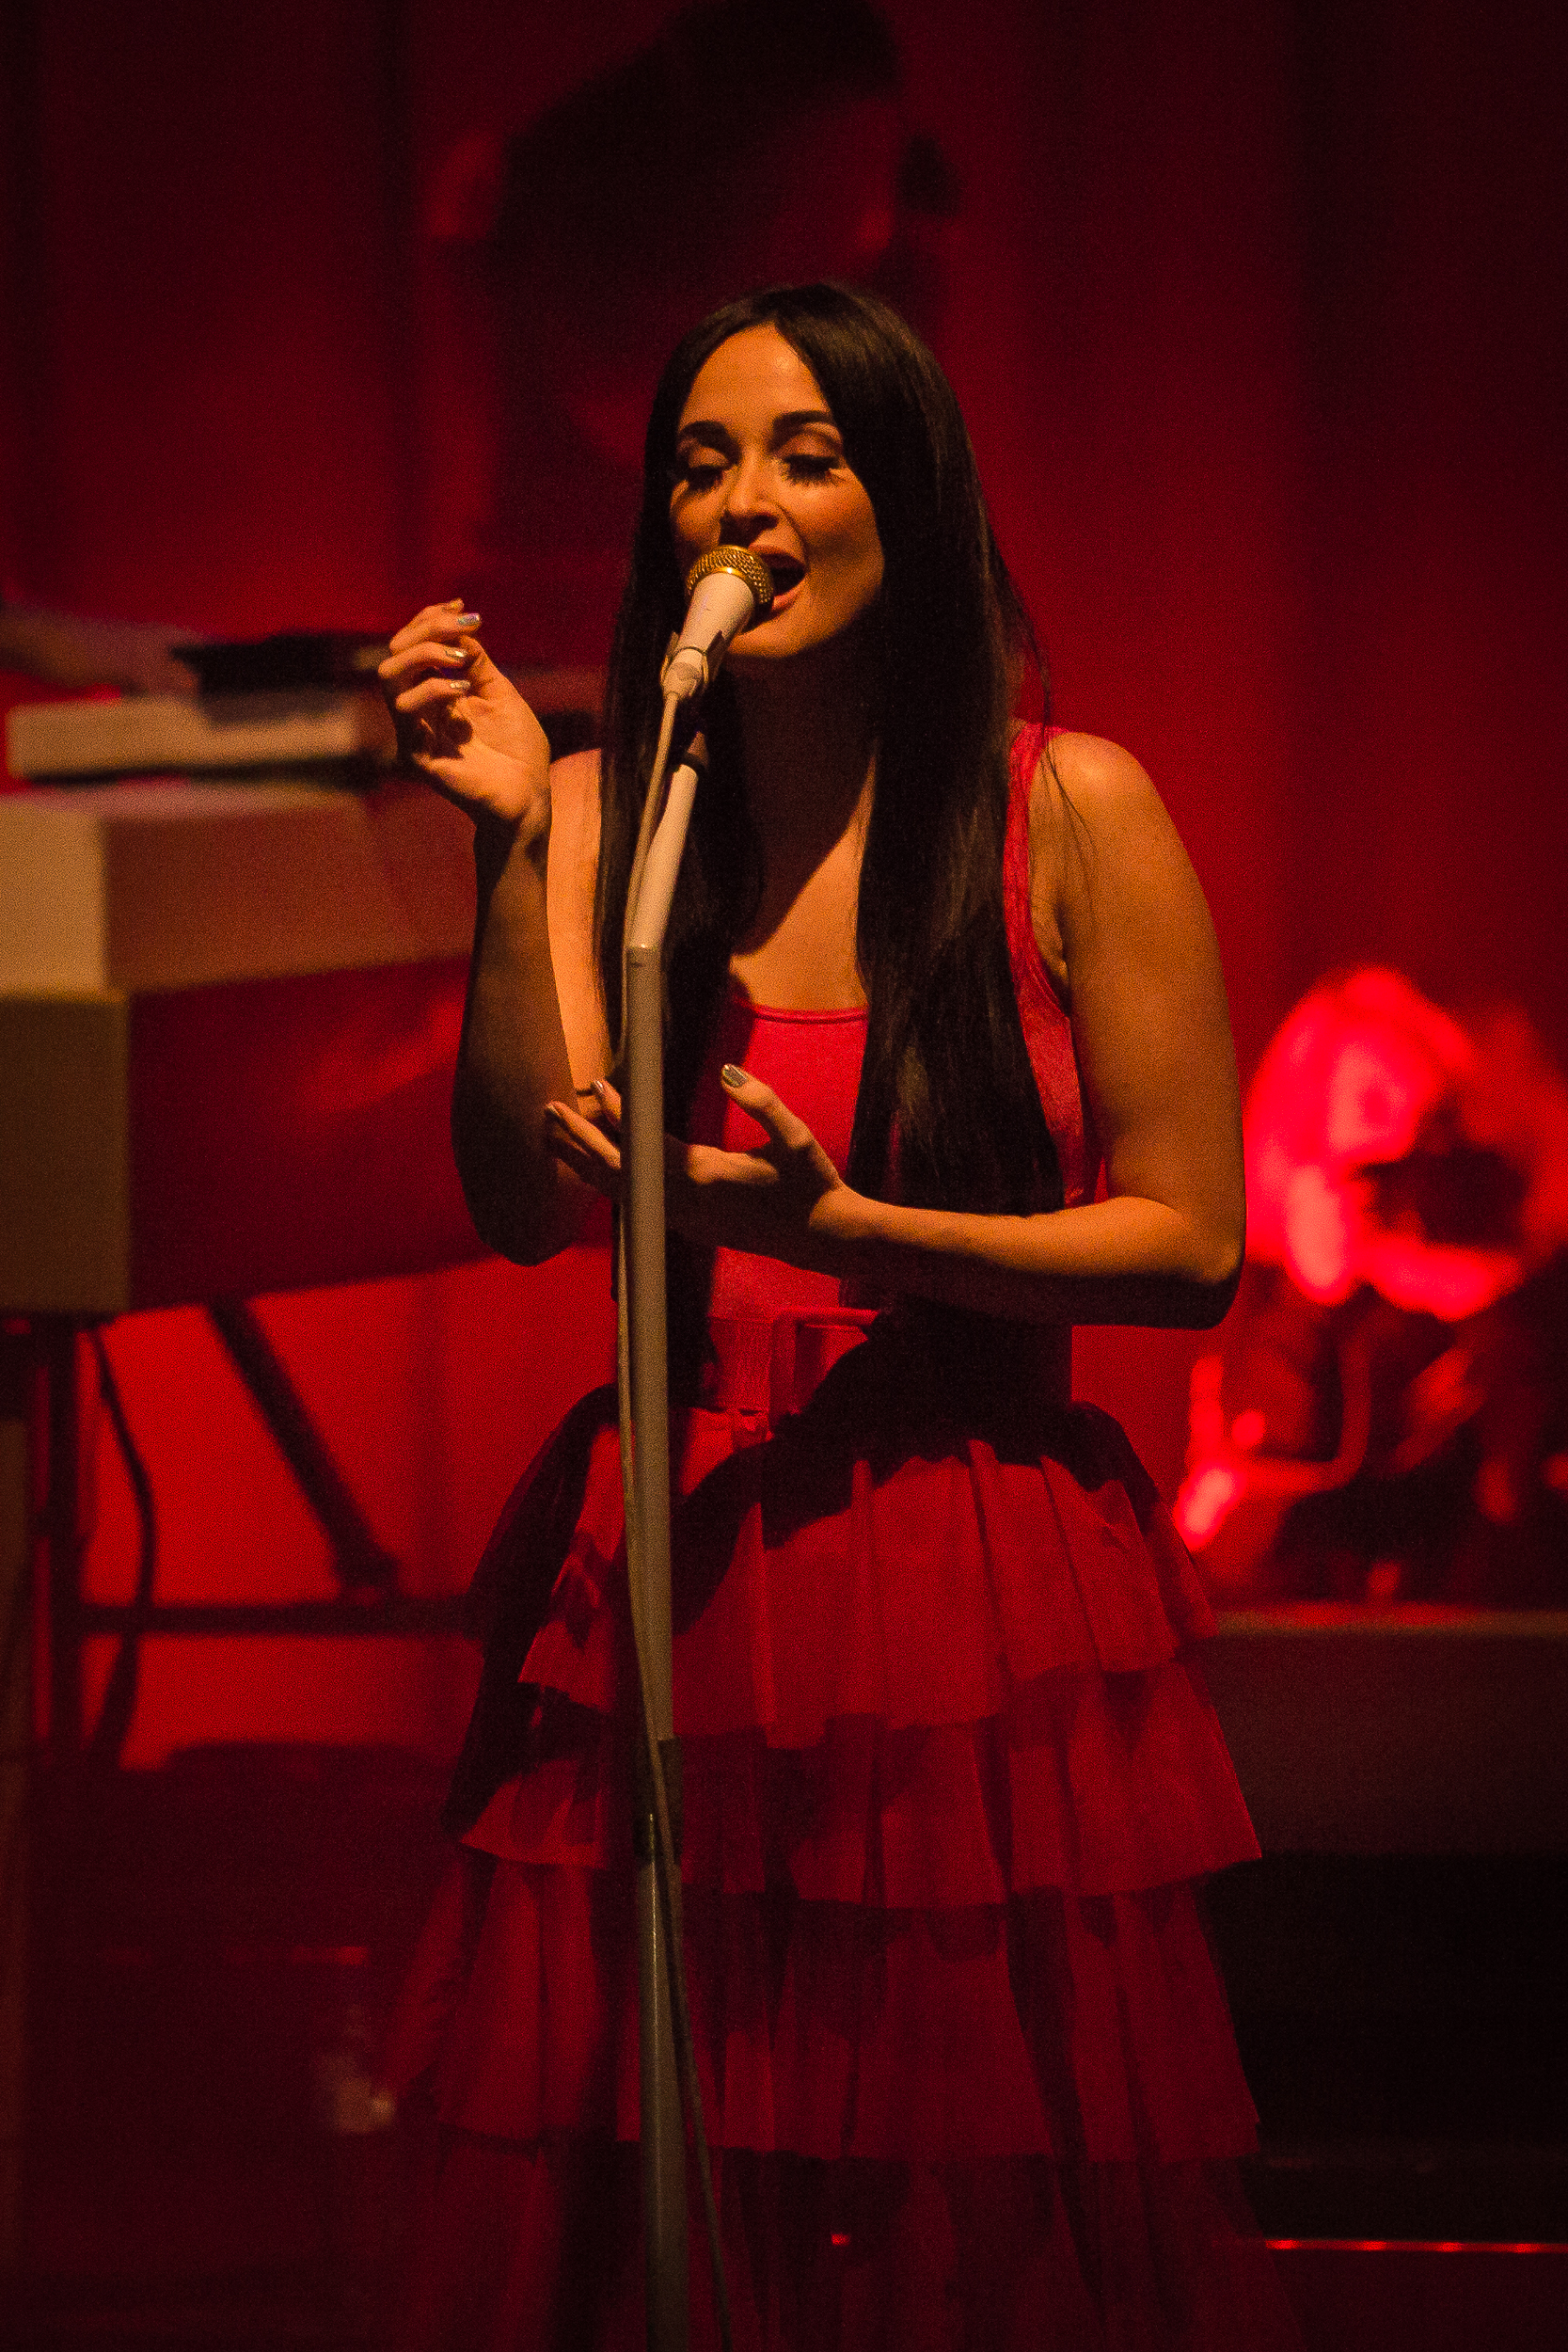 Kacey Musgraves live at Sentrum Scene